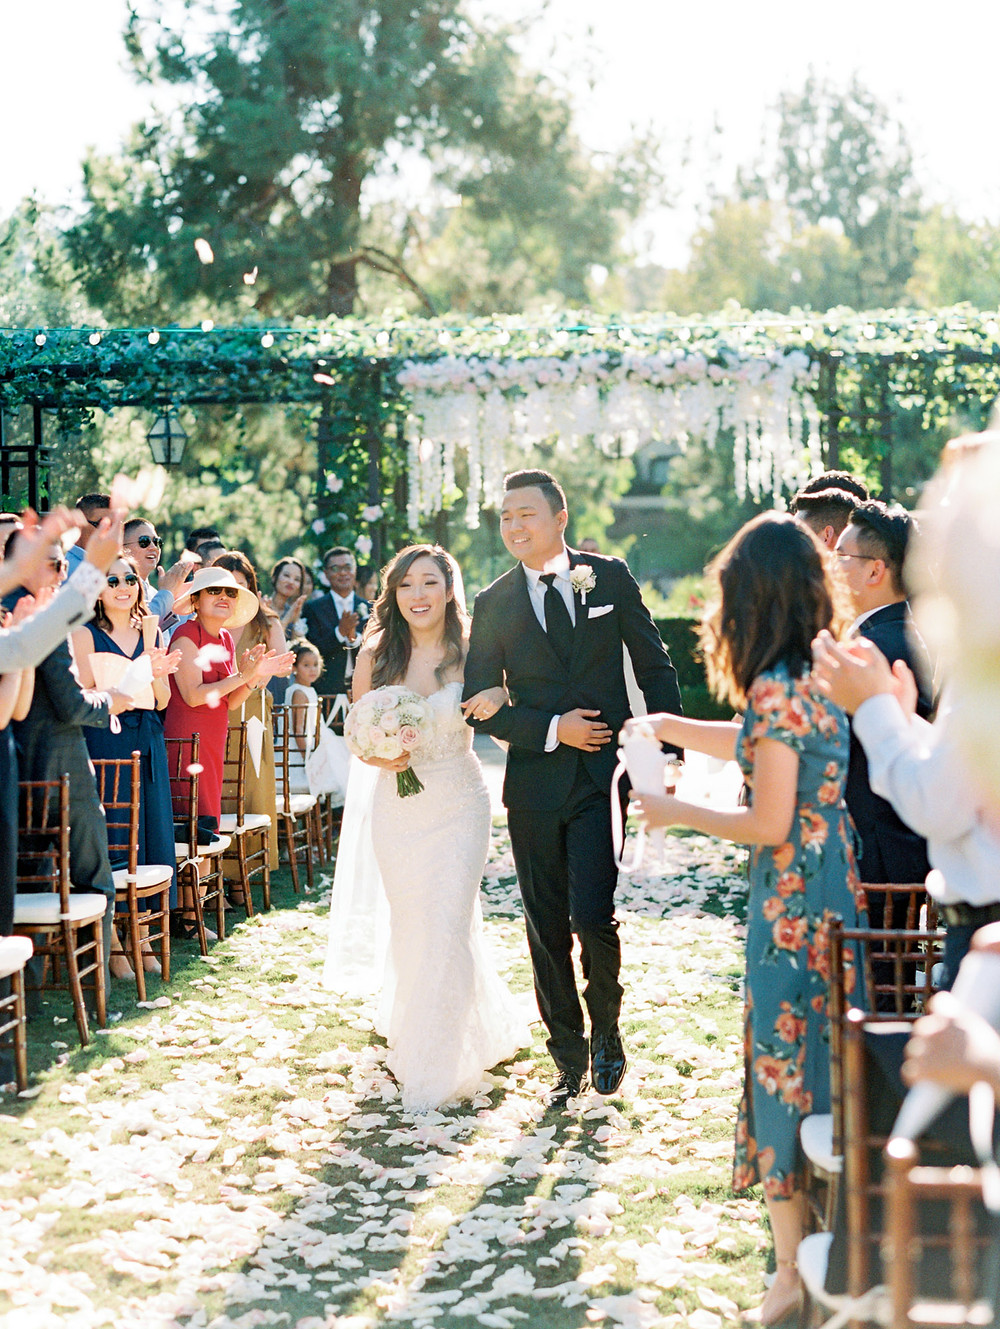 Esther + Yoon's Garden Wedding At Rancho Bernardo Inn in San Diego, CA